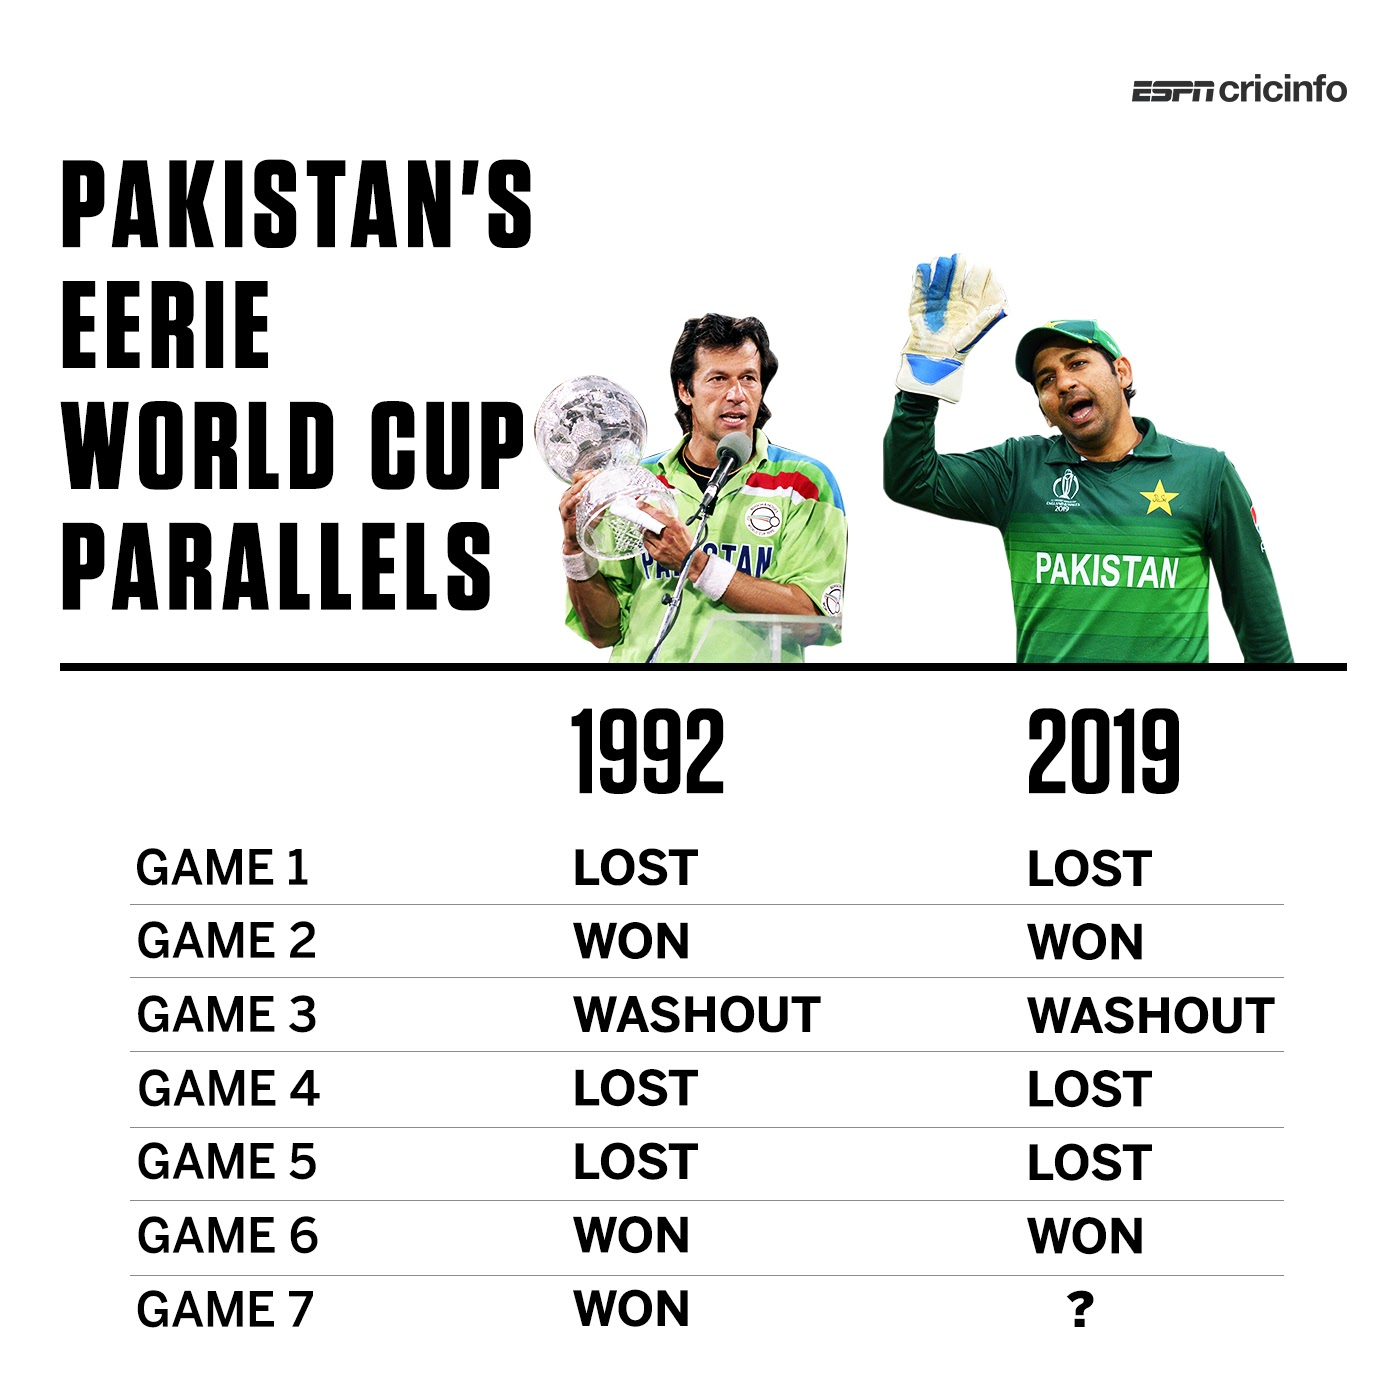 Similarities between 1992 and 2019 Cricket World Cup